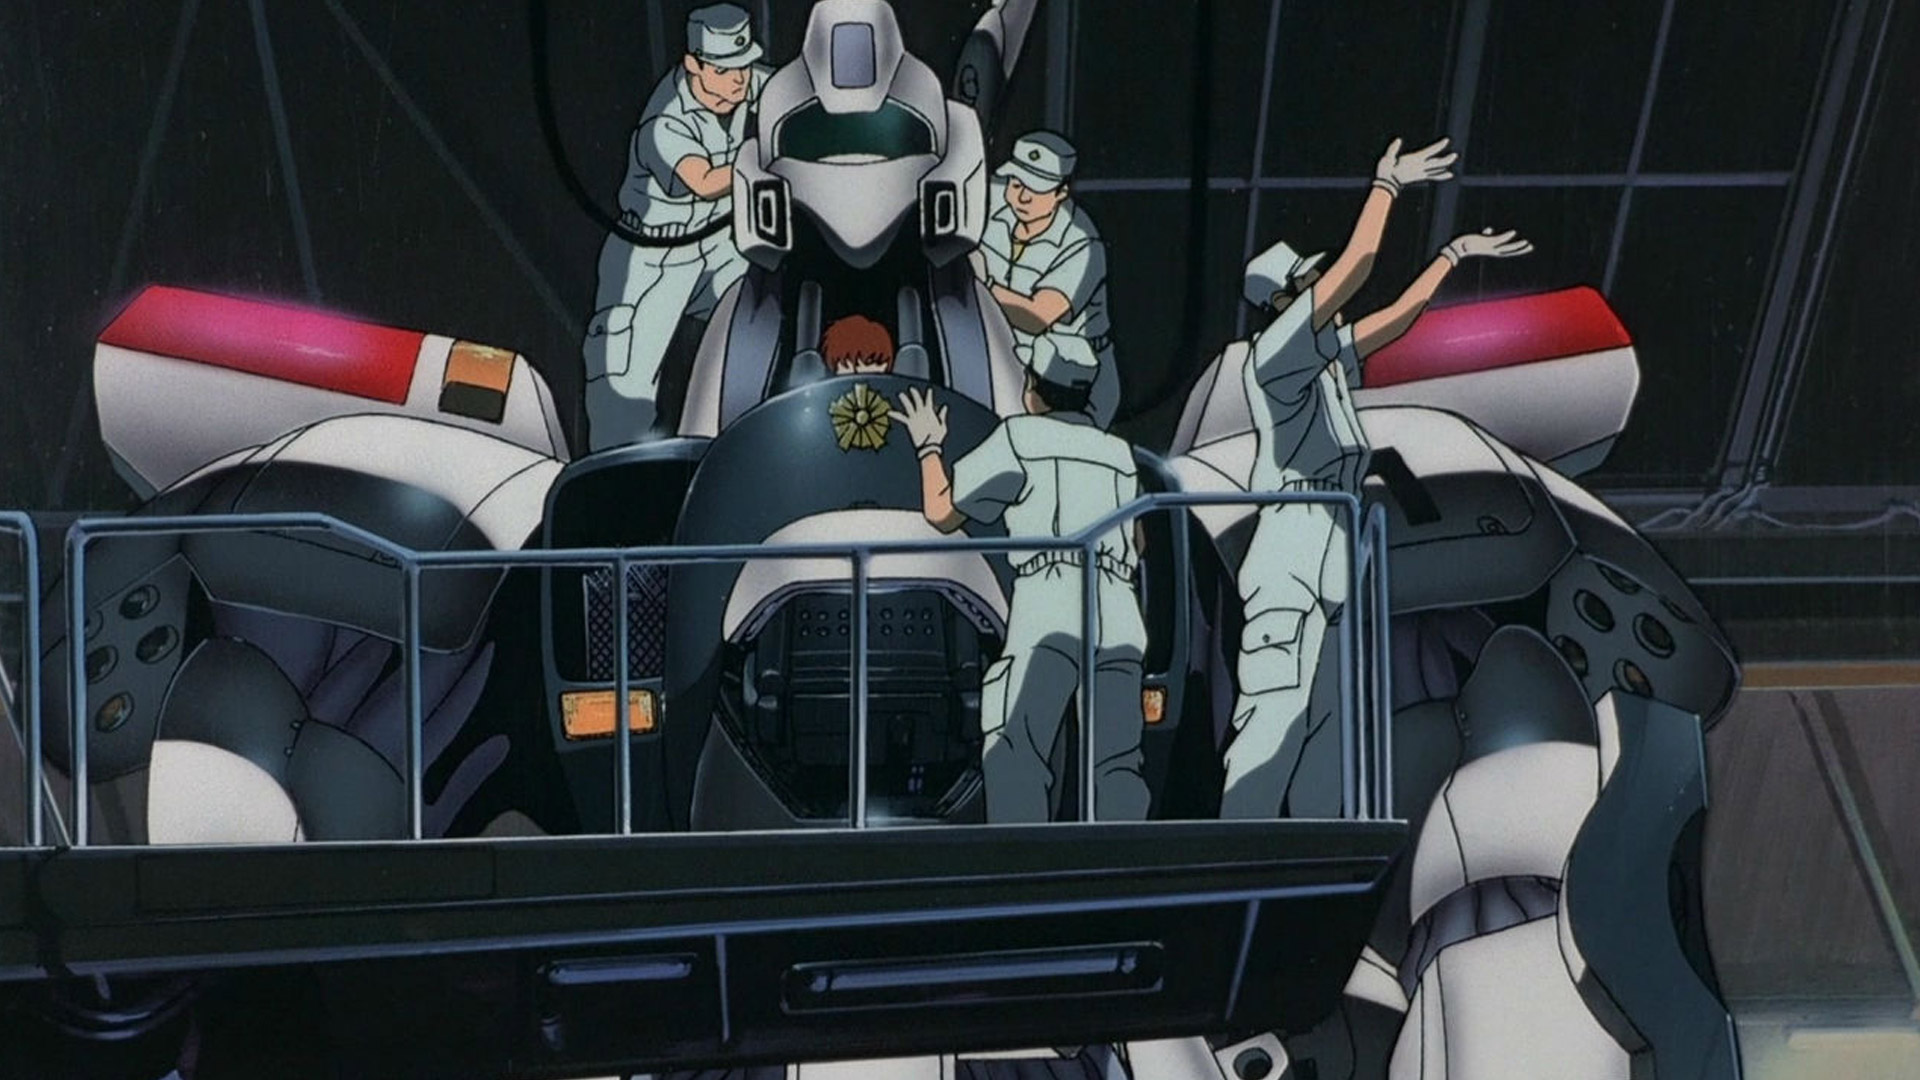 Patlabor: The Mobile Police Complete Collection